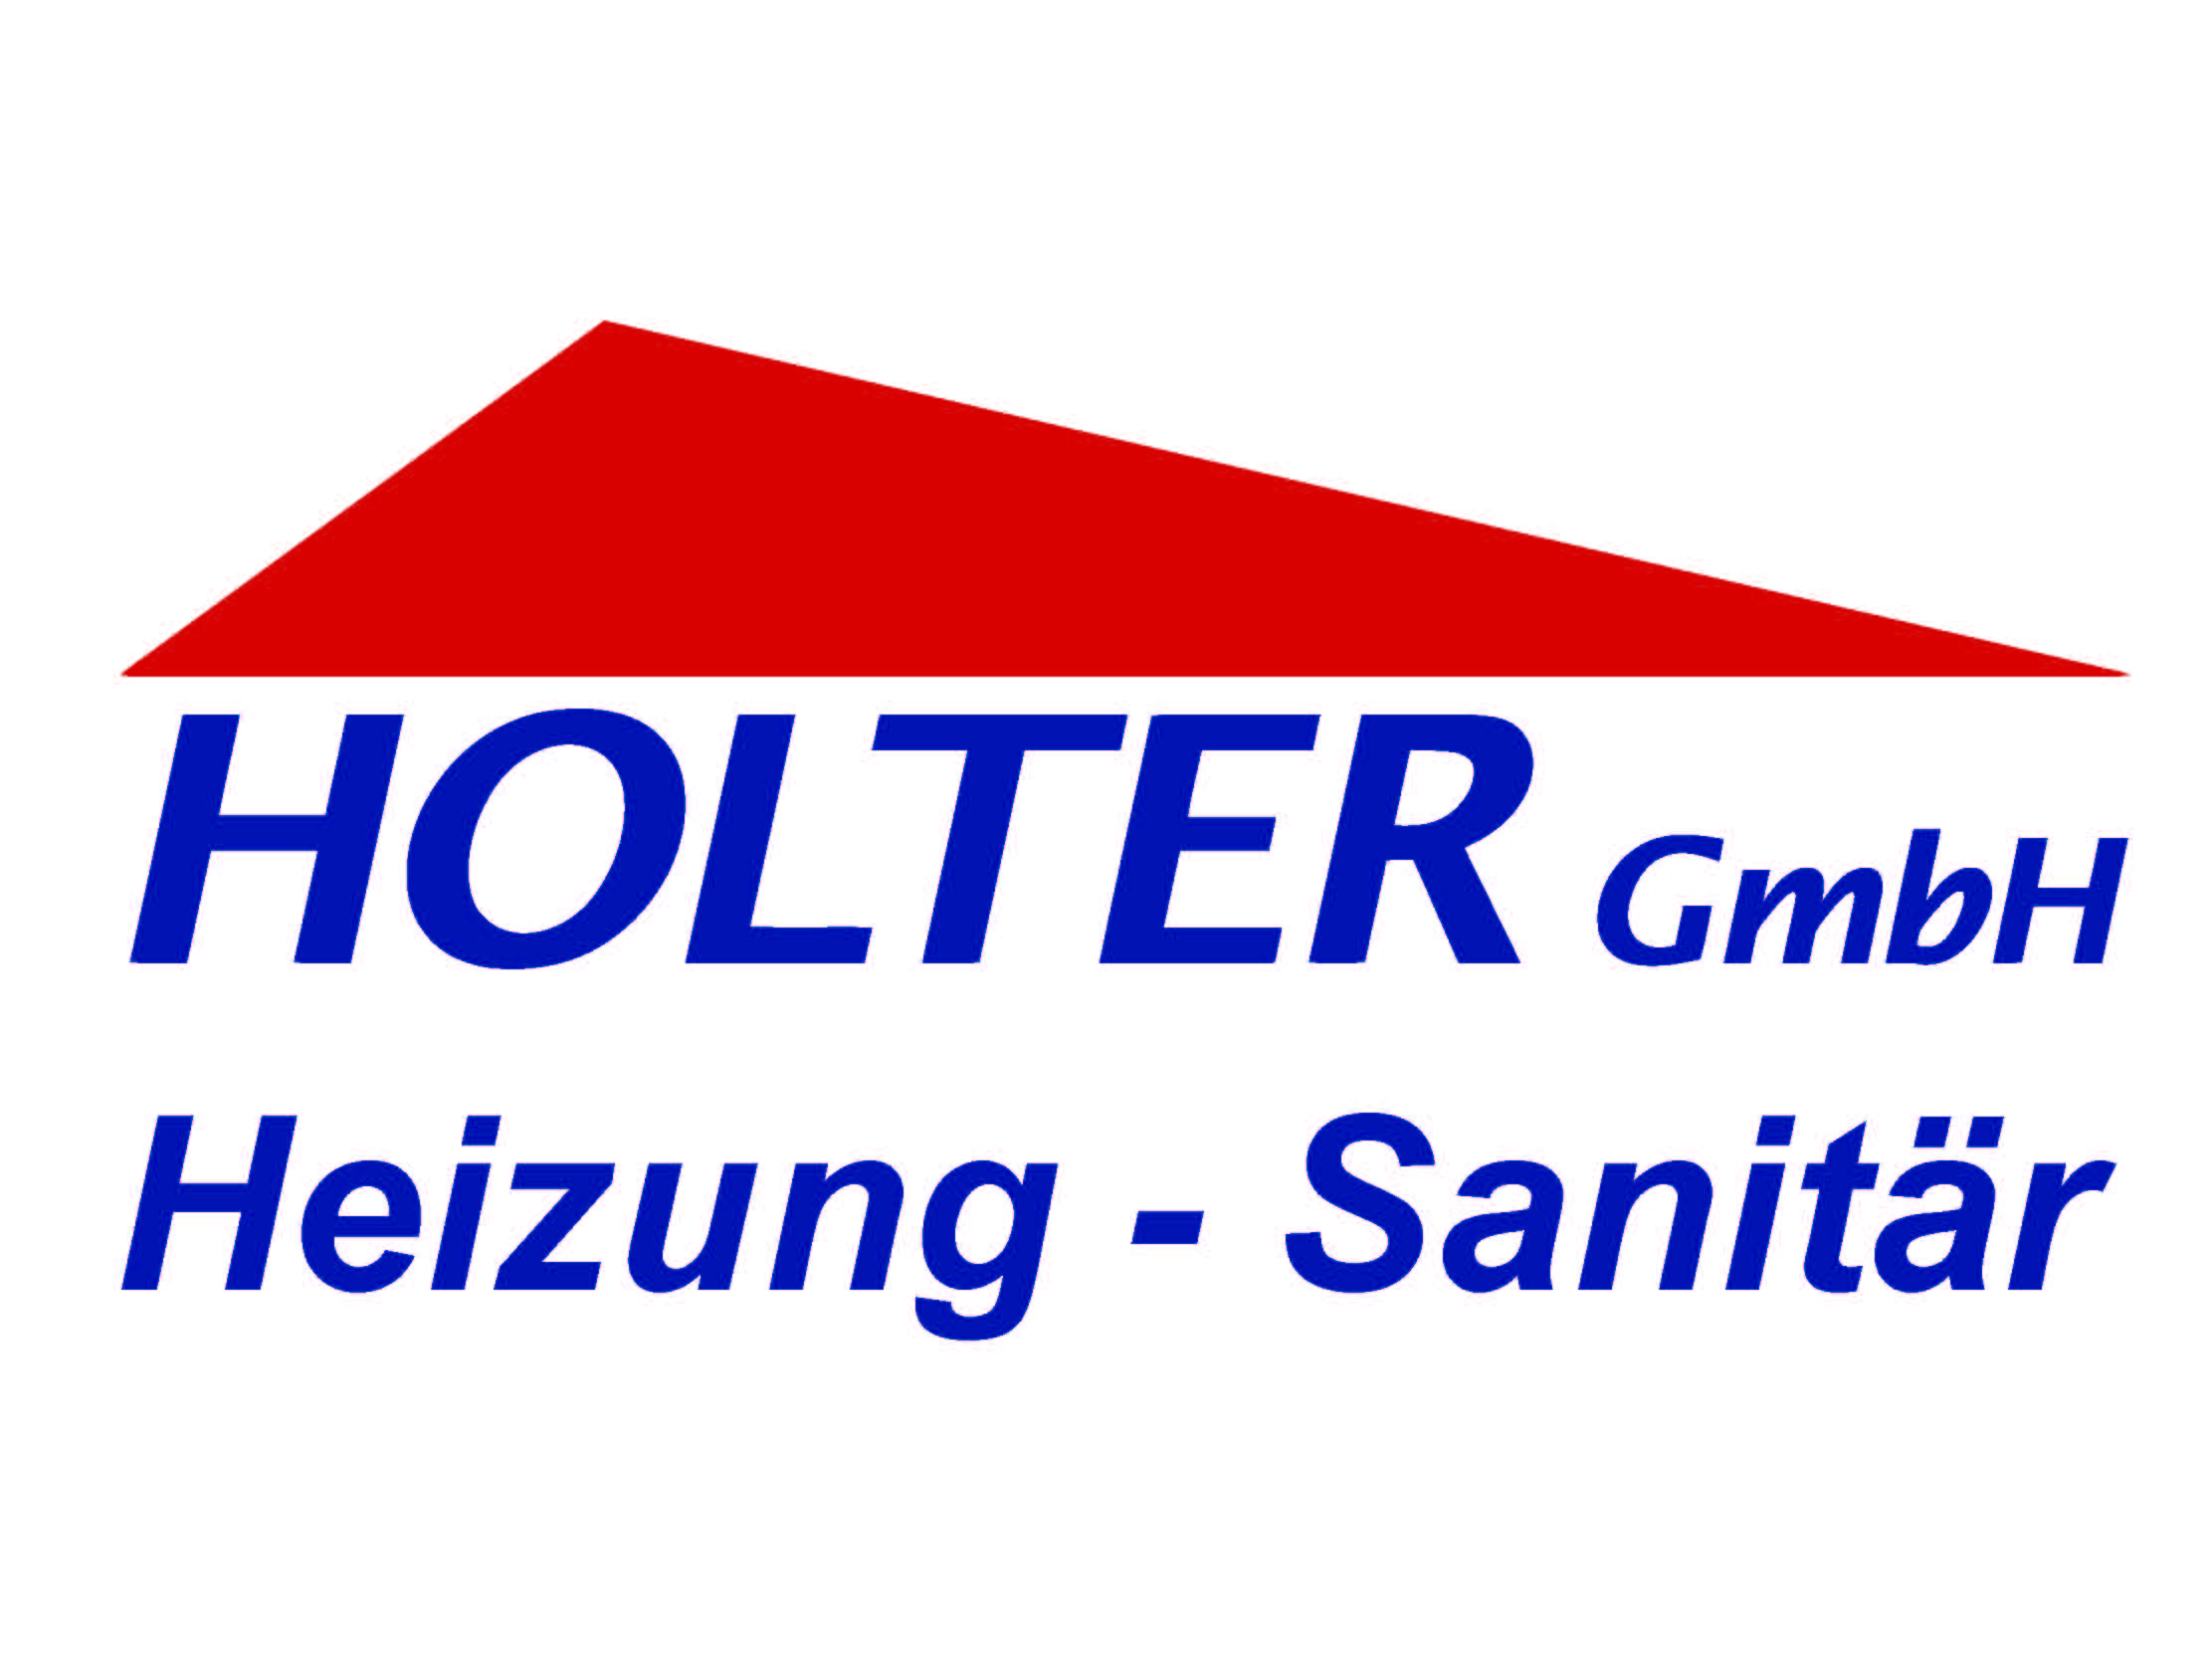 Holter GmbH